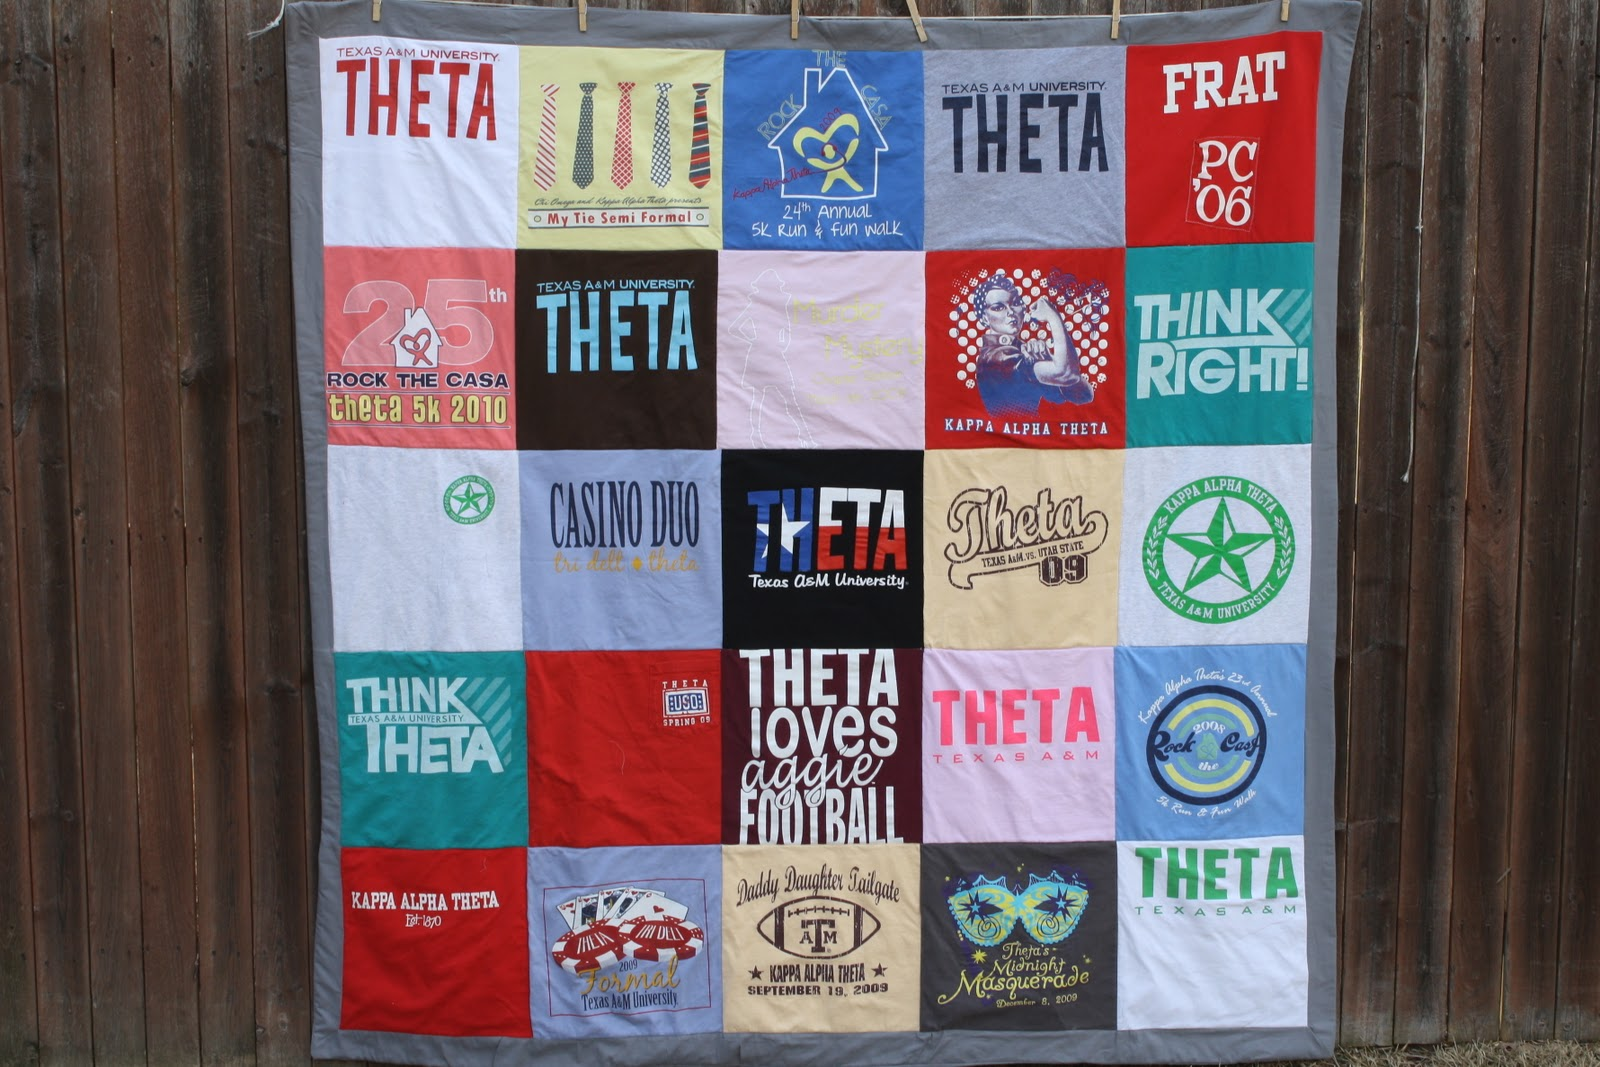 Diy t shirt quilt part two of two caroline hulse blog for How to make t shirt quilts easy